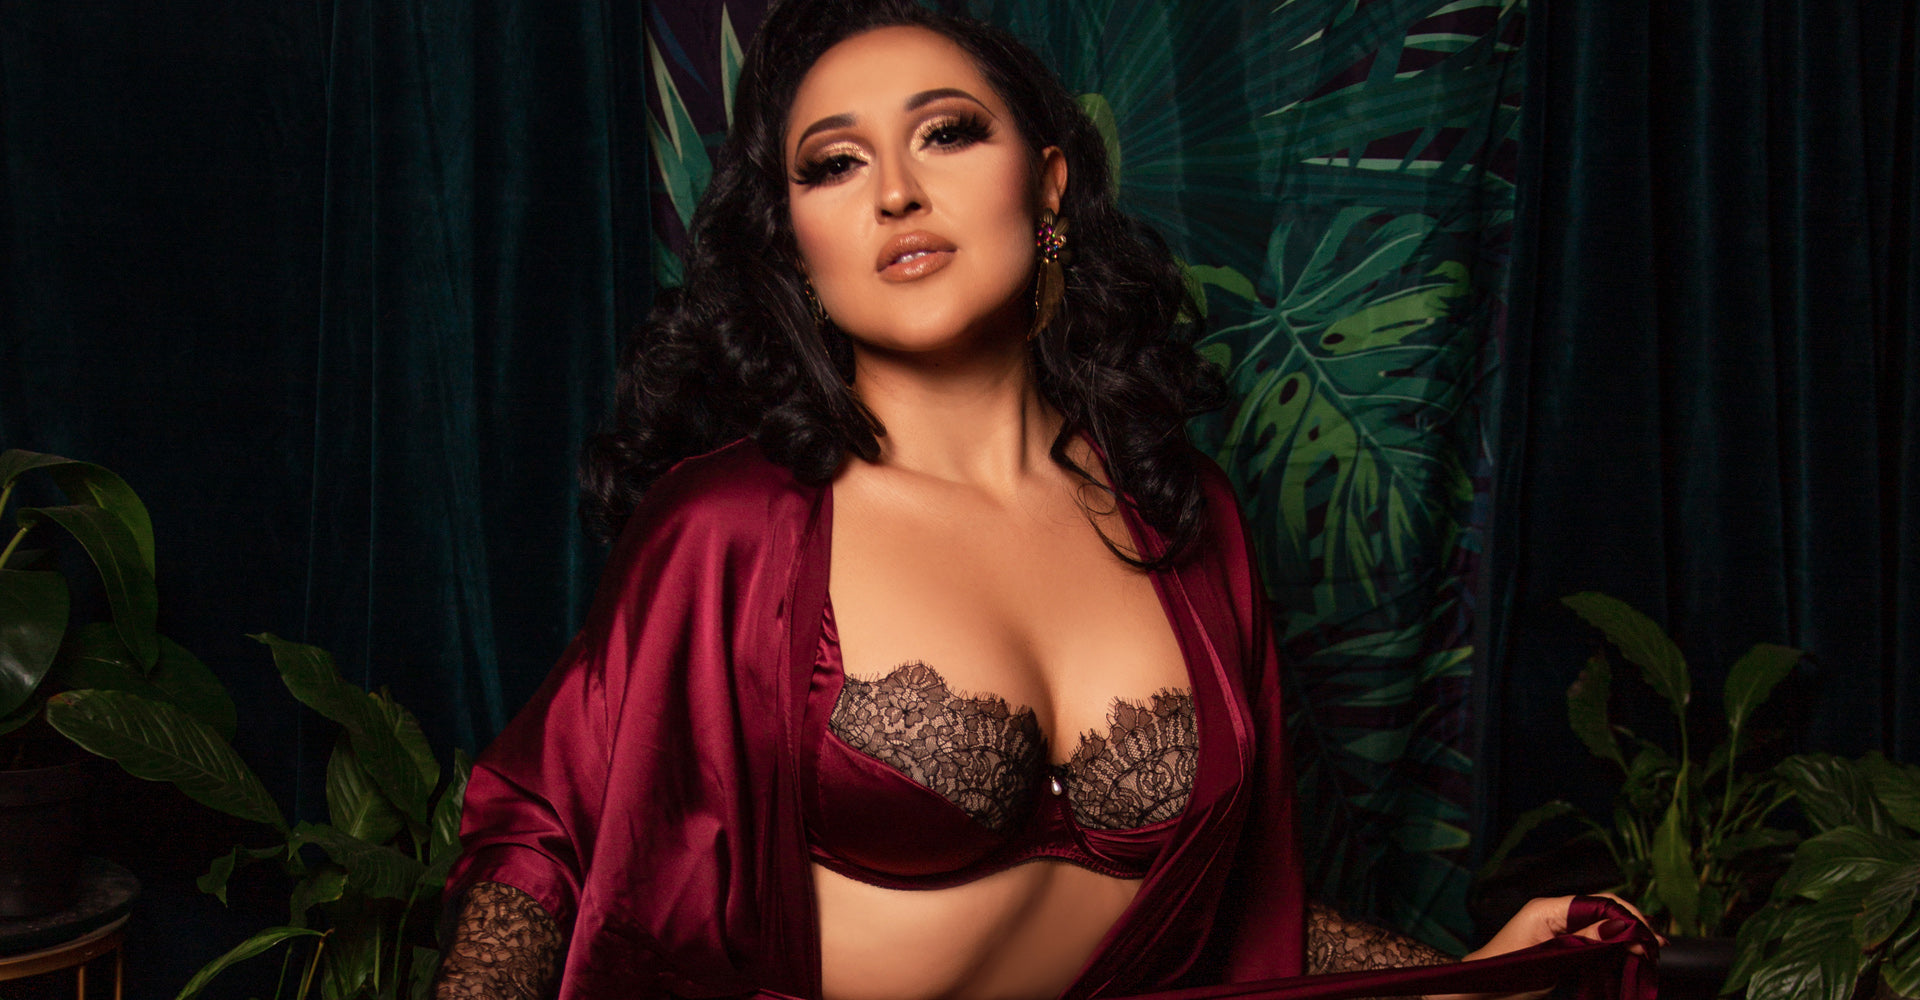 Luxury silk and lace bra and robe for G cup sizes